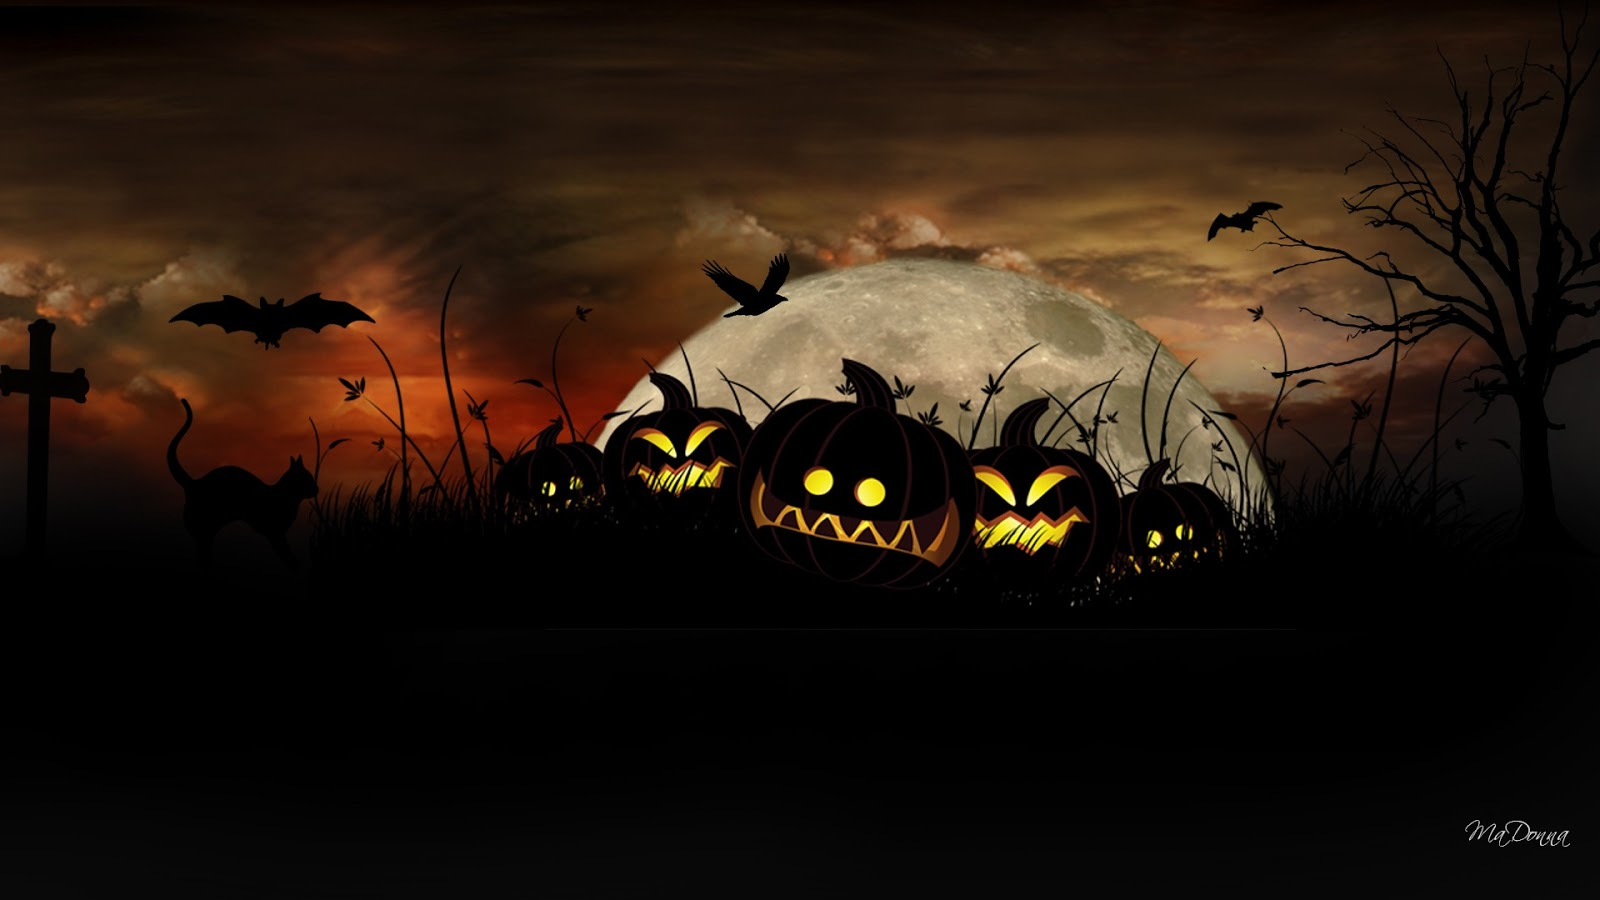 Cute Halloween Wallpapers for Desktop - WallpaperSafari